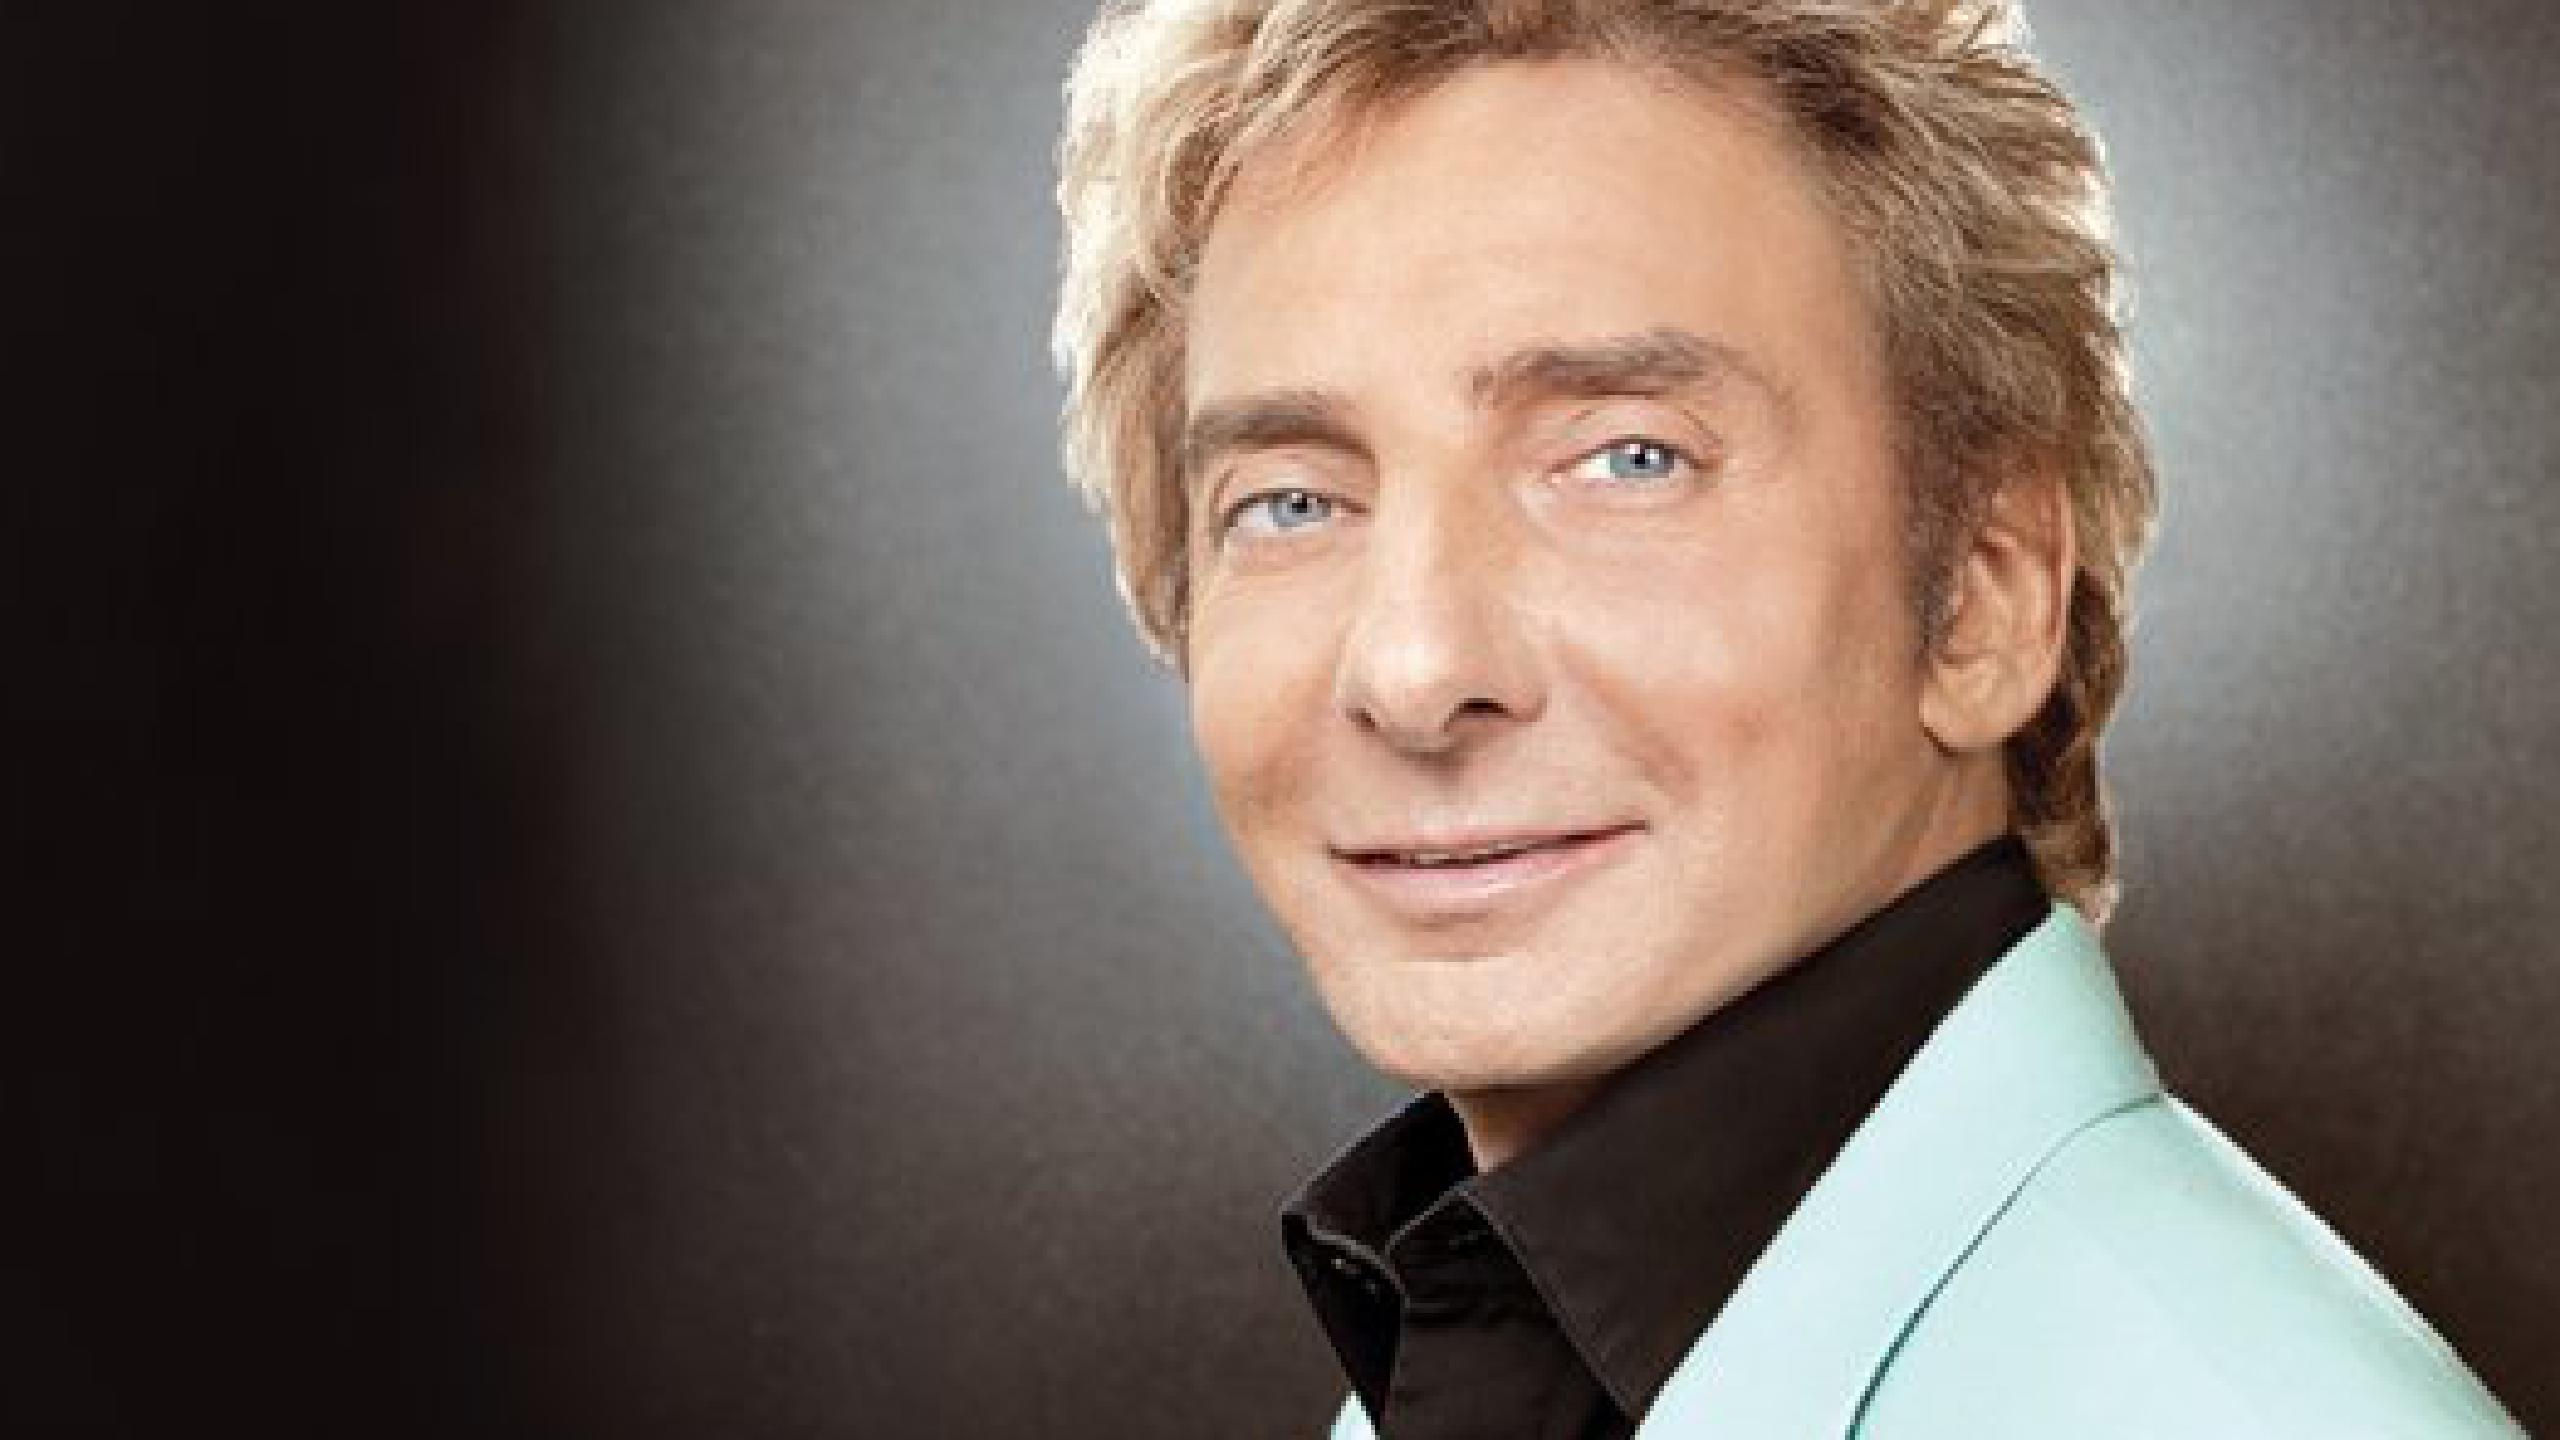 Barry Manilow Tour Dates 2020 Barry Manilow tour dates 2019 2020. Barry Manilow tickets and